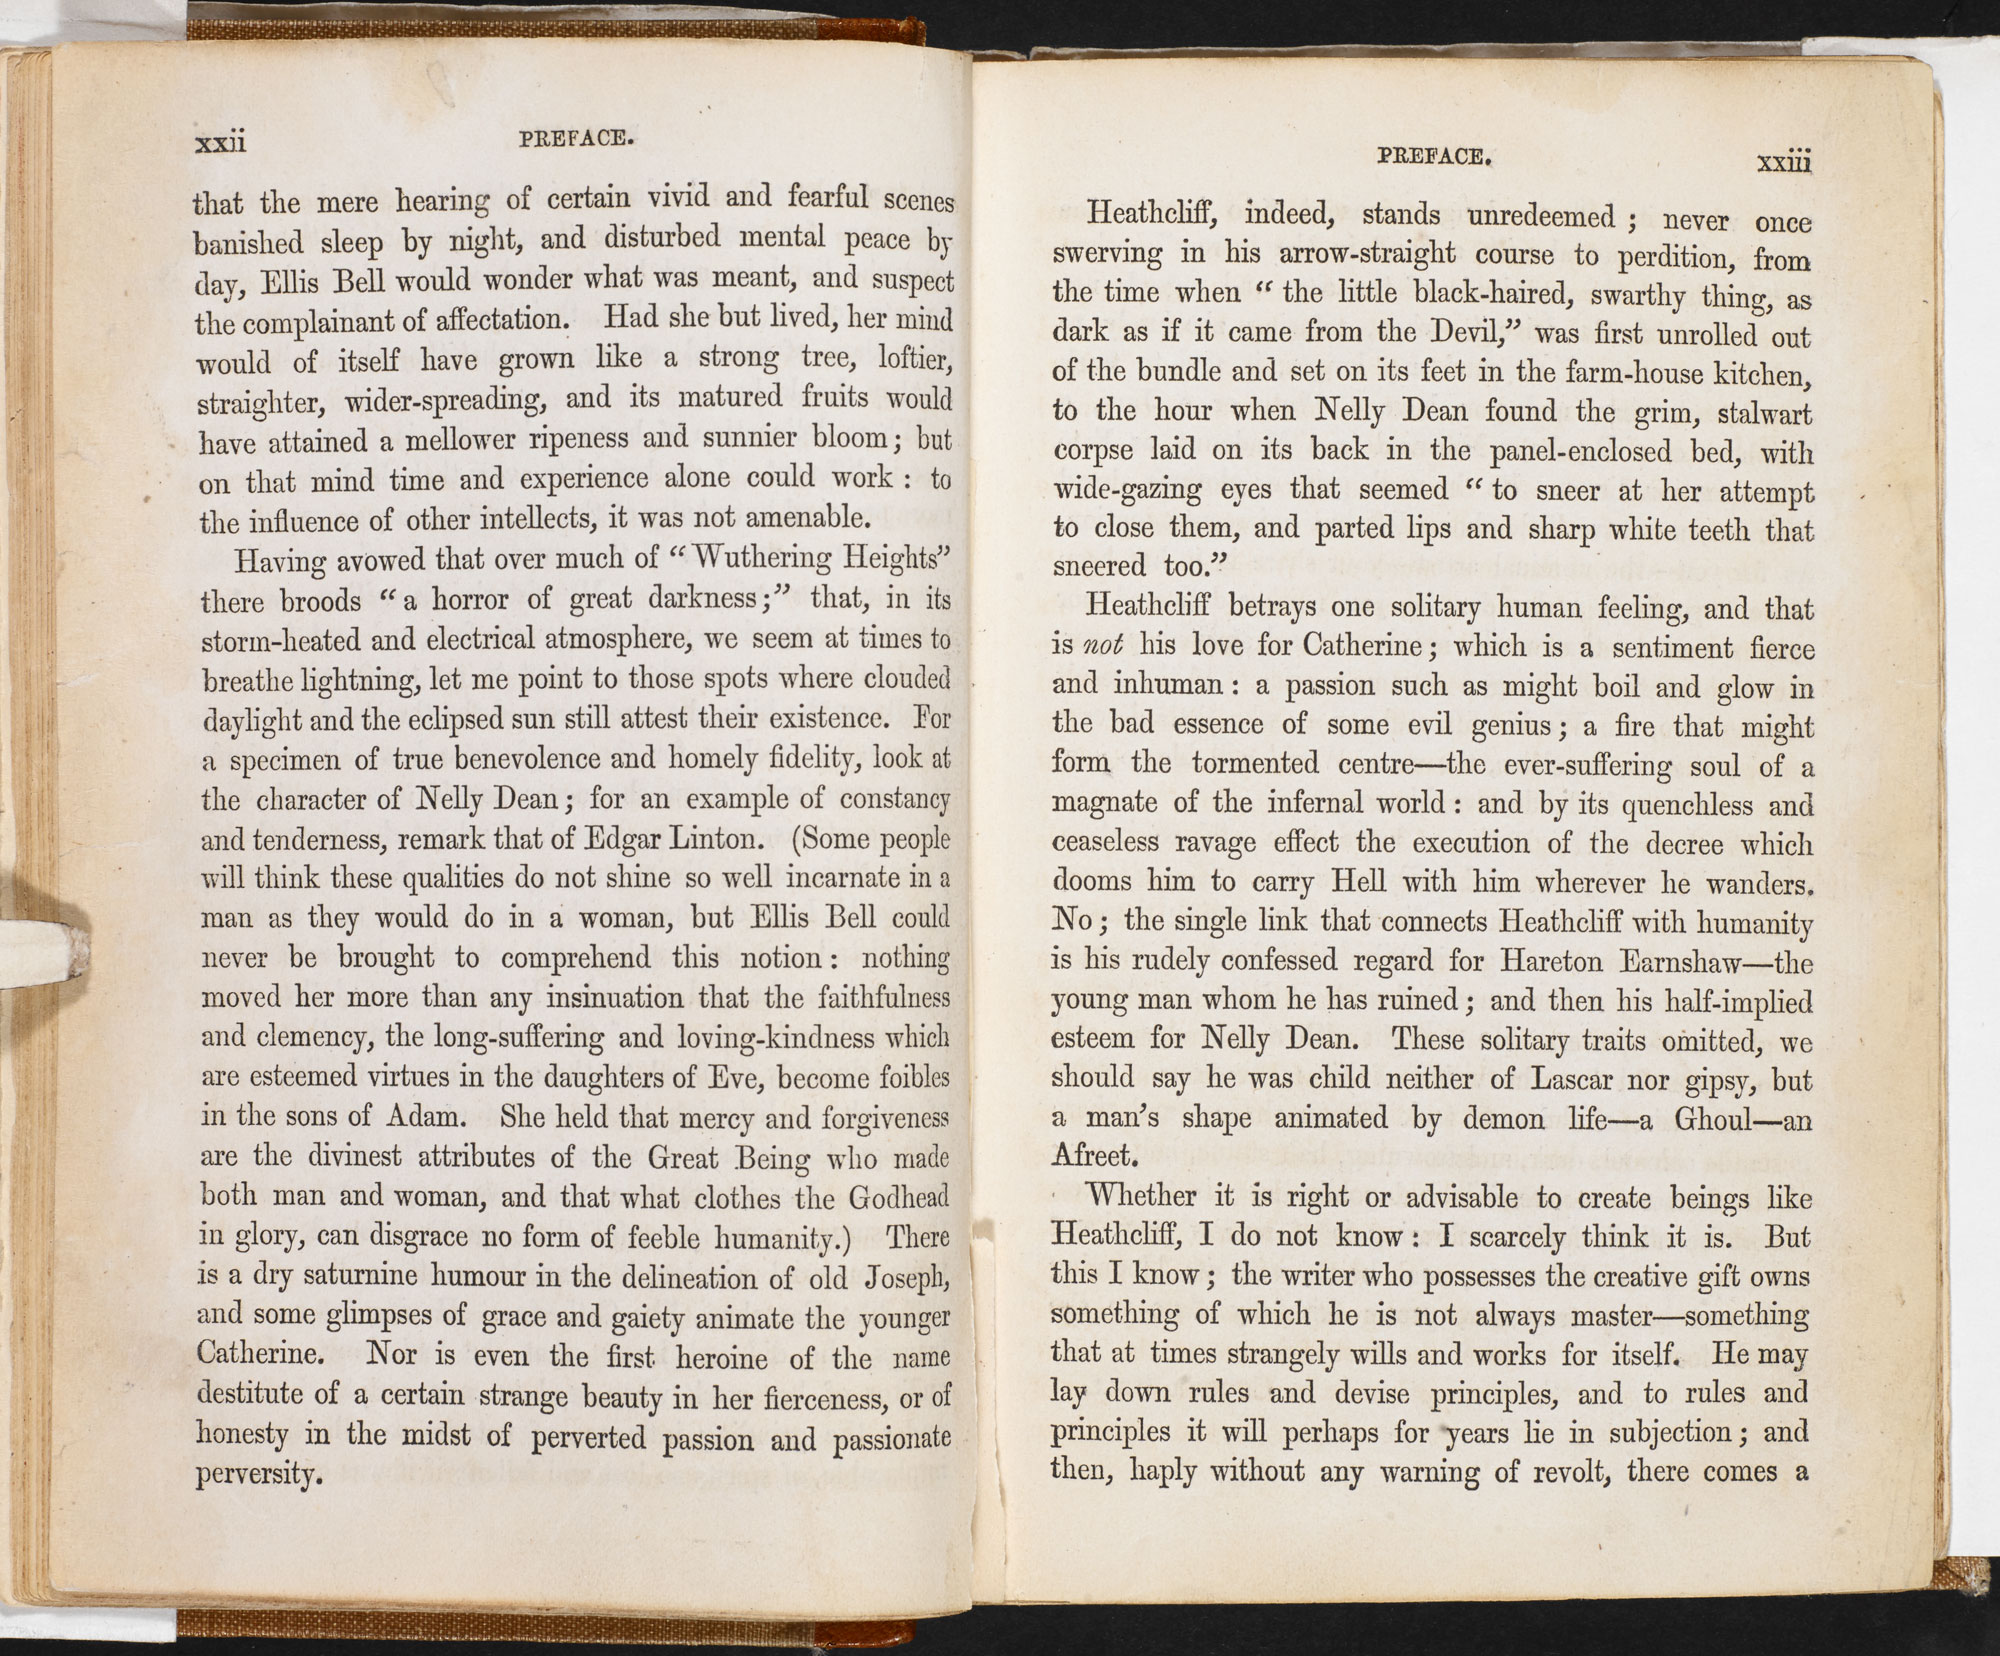 Charlotte Brontë's 1850 Preface to Wuthering Heights [page: xxii-xxiii]